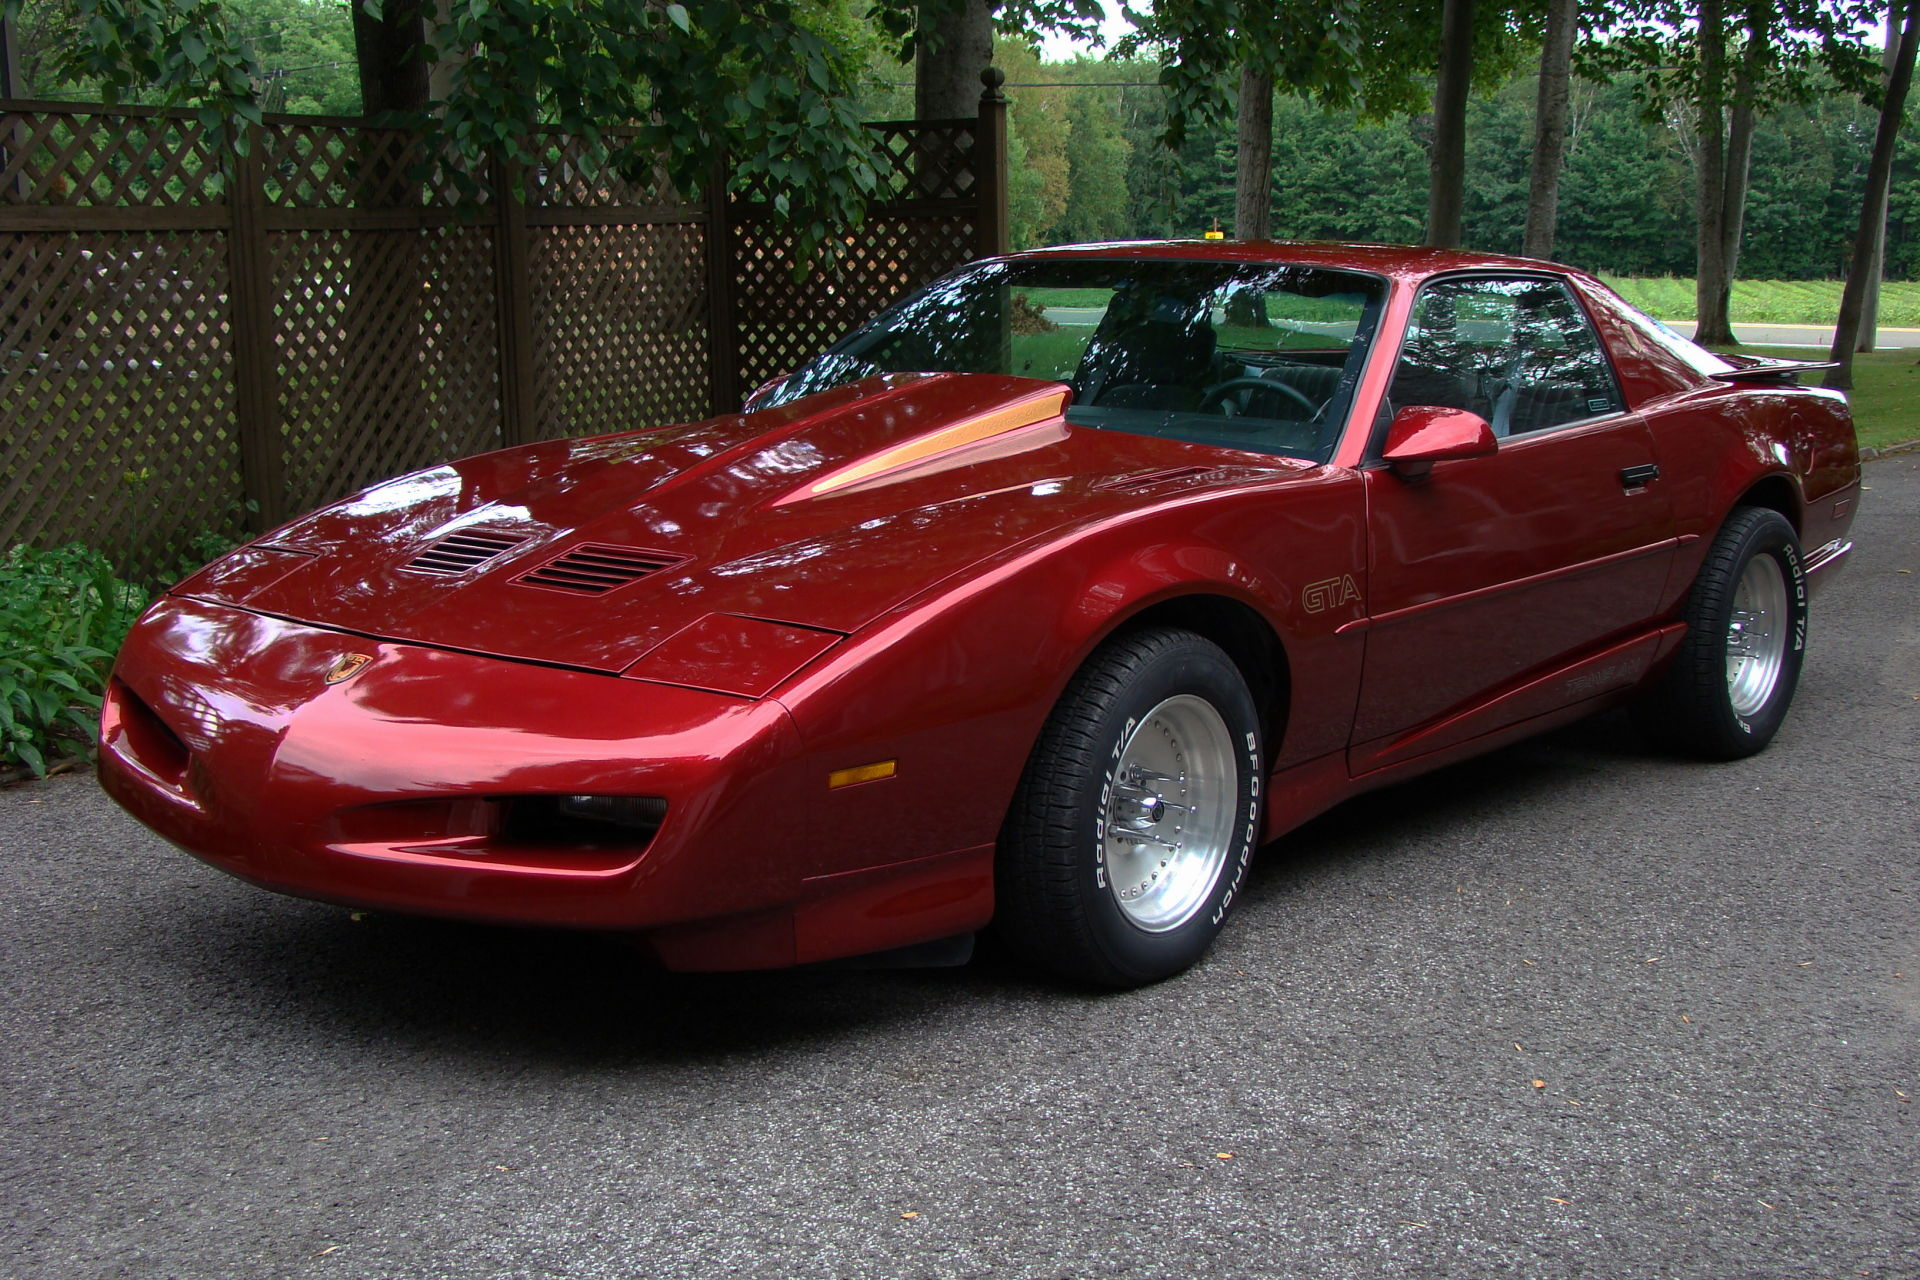 Trans Am GTA 1991 - Voiture de collection